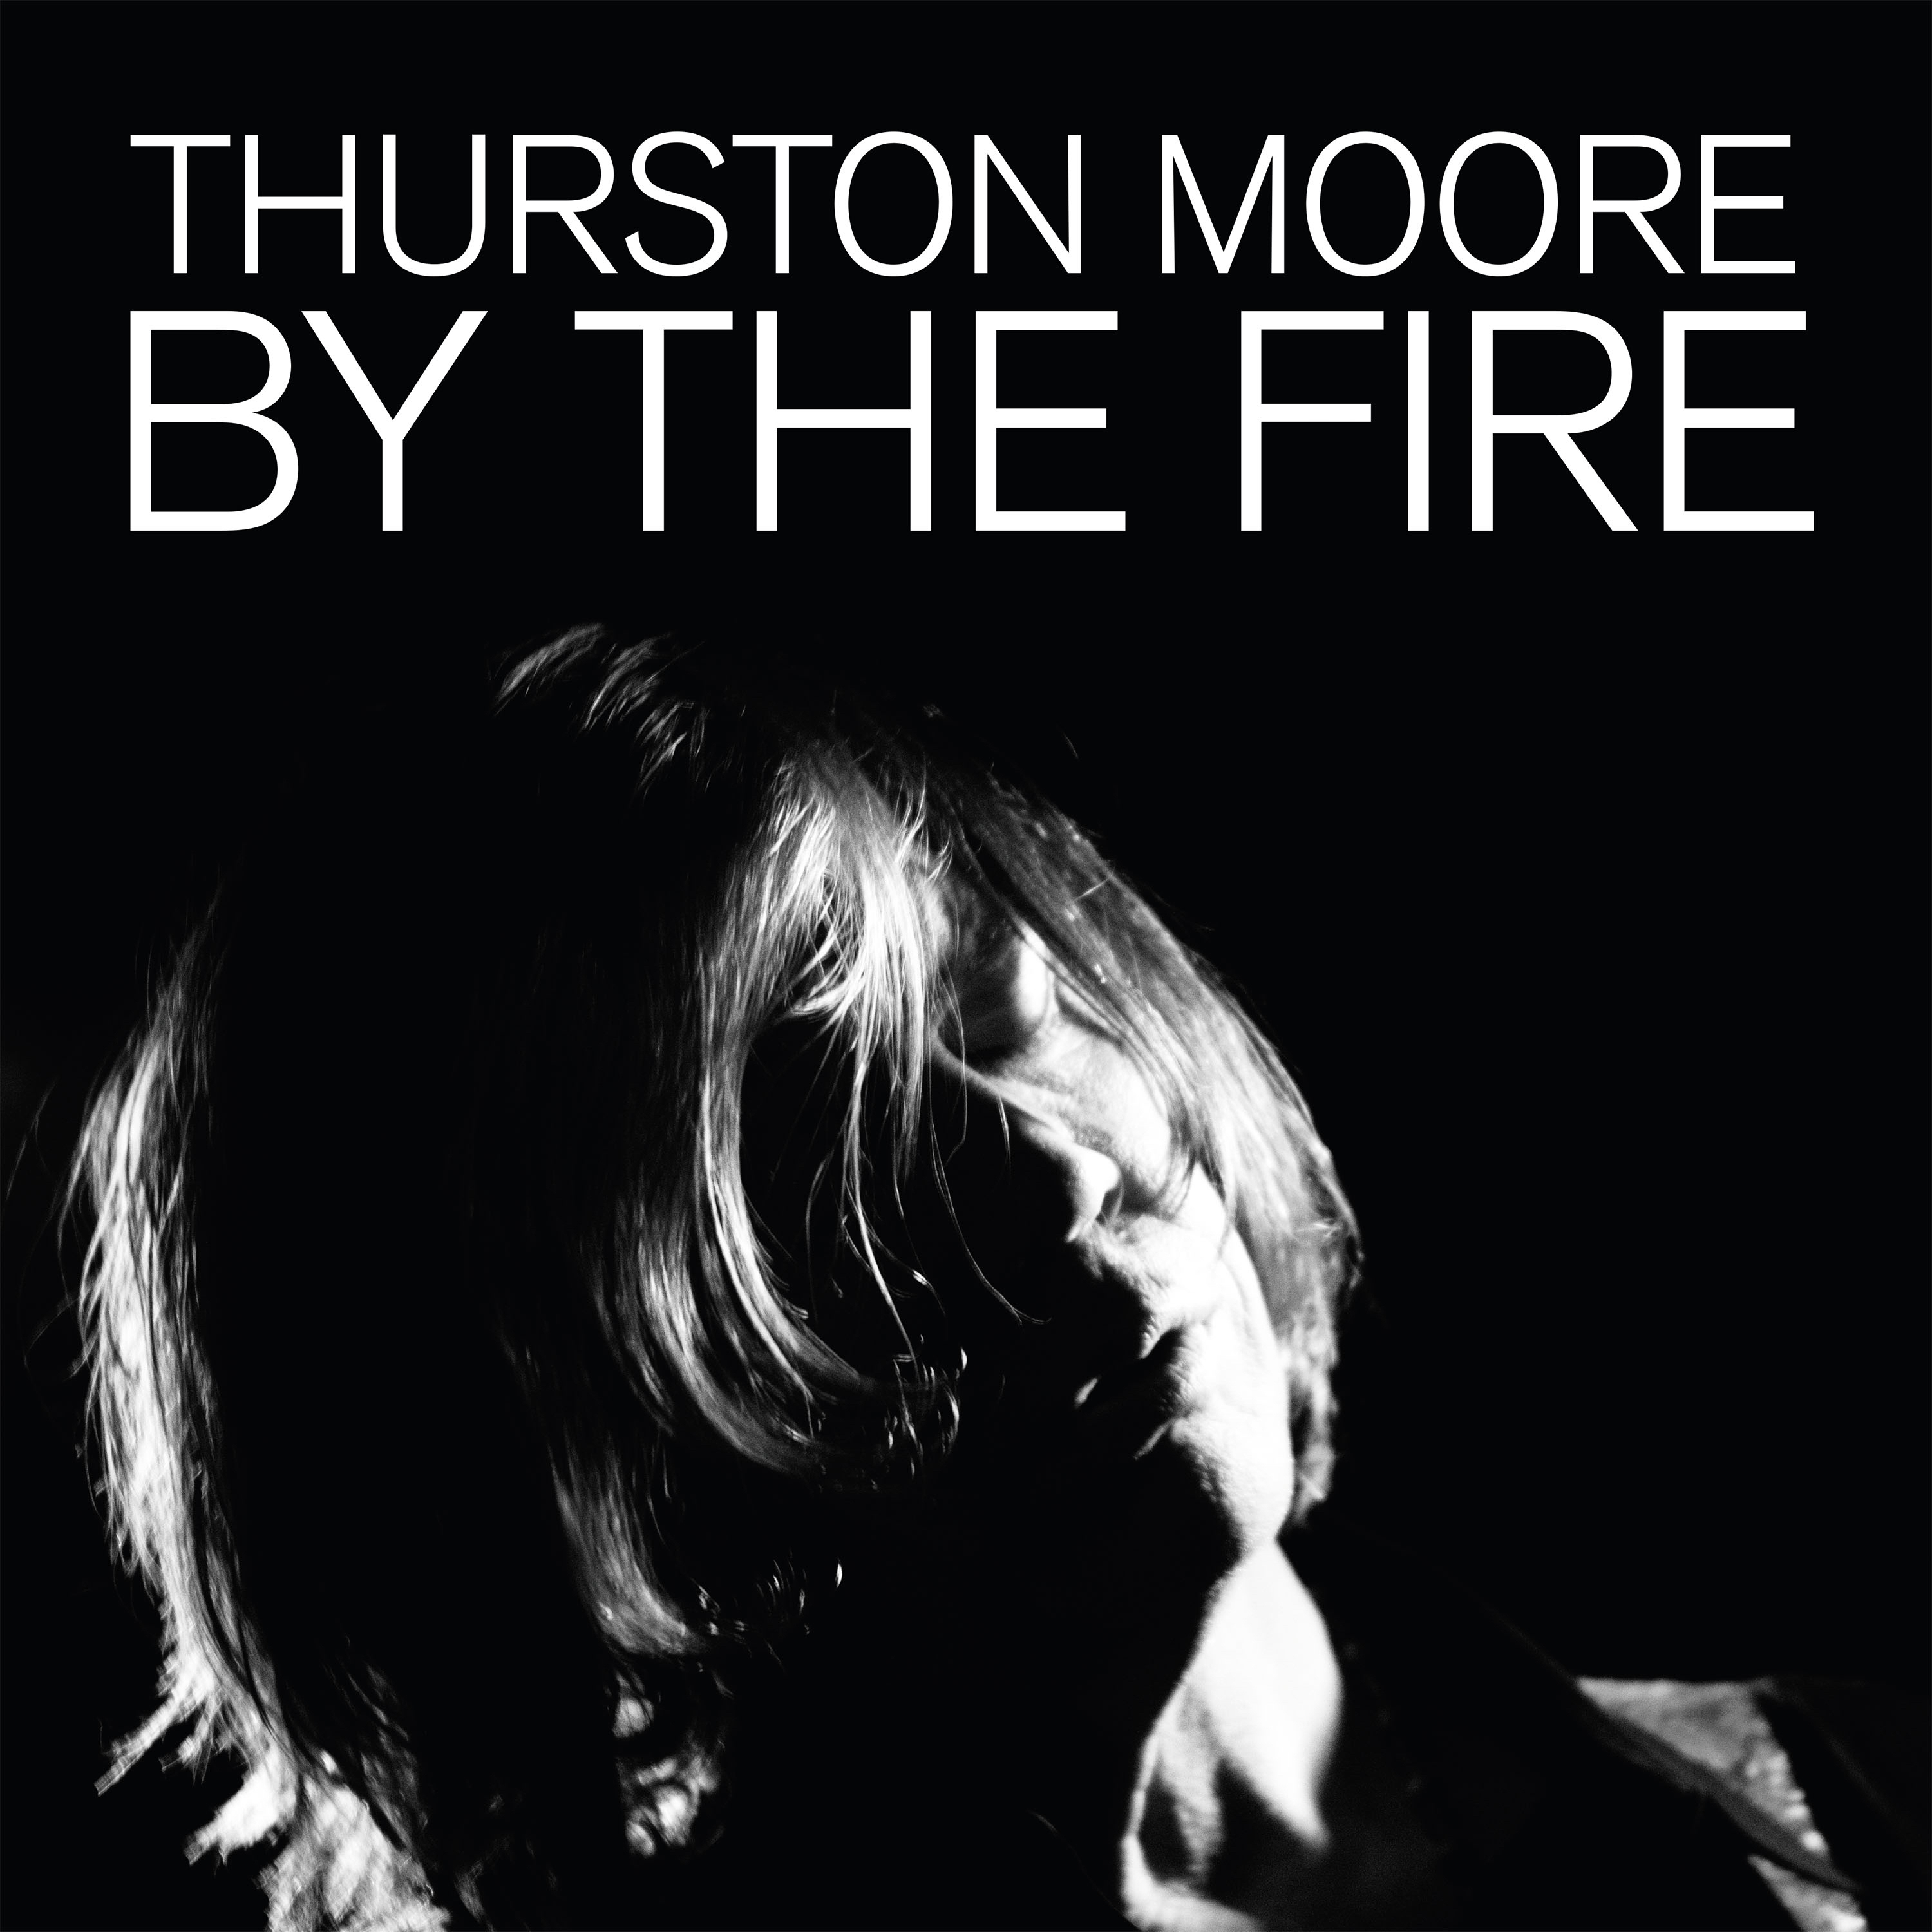 Thurston Moore - By The Fire [2xLP] (Transparent orange vinyl)